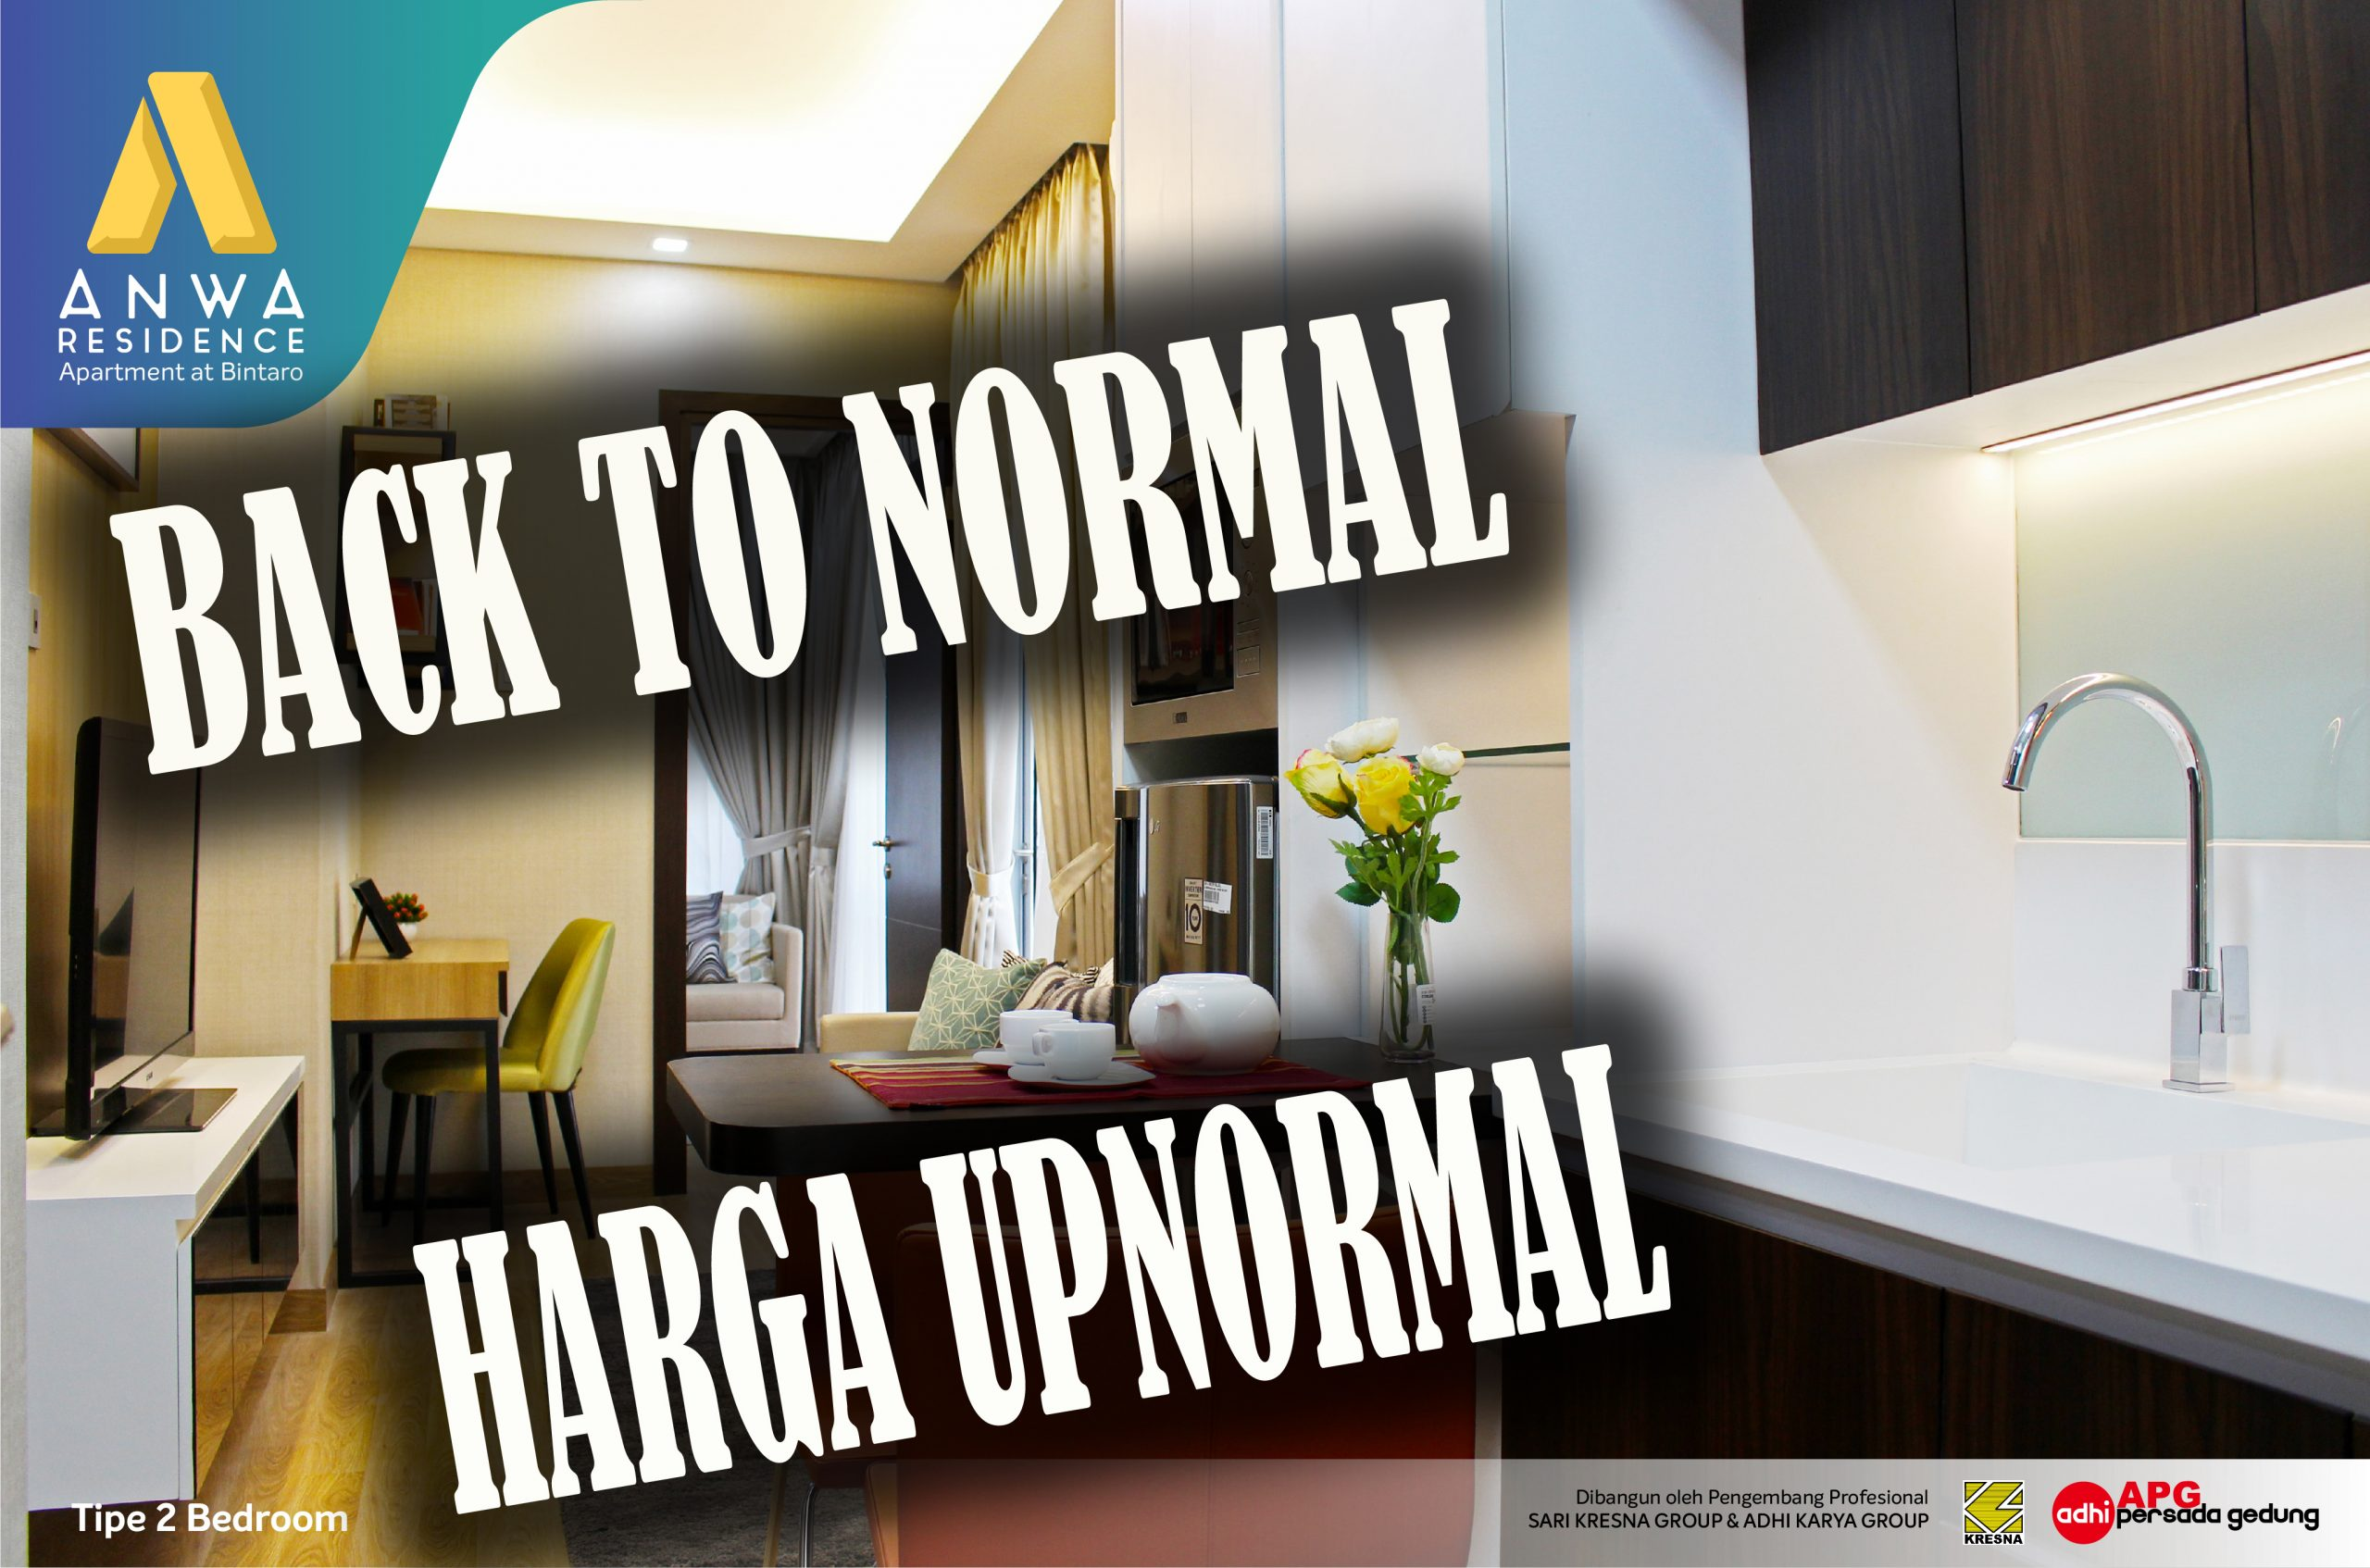 Back to Norma Harga Upnormal